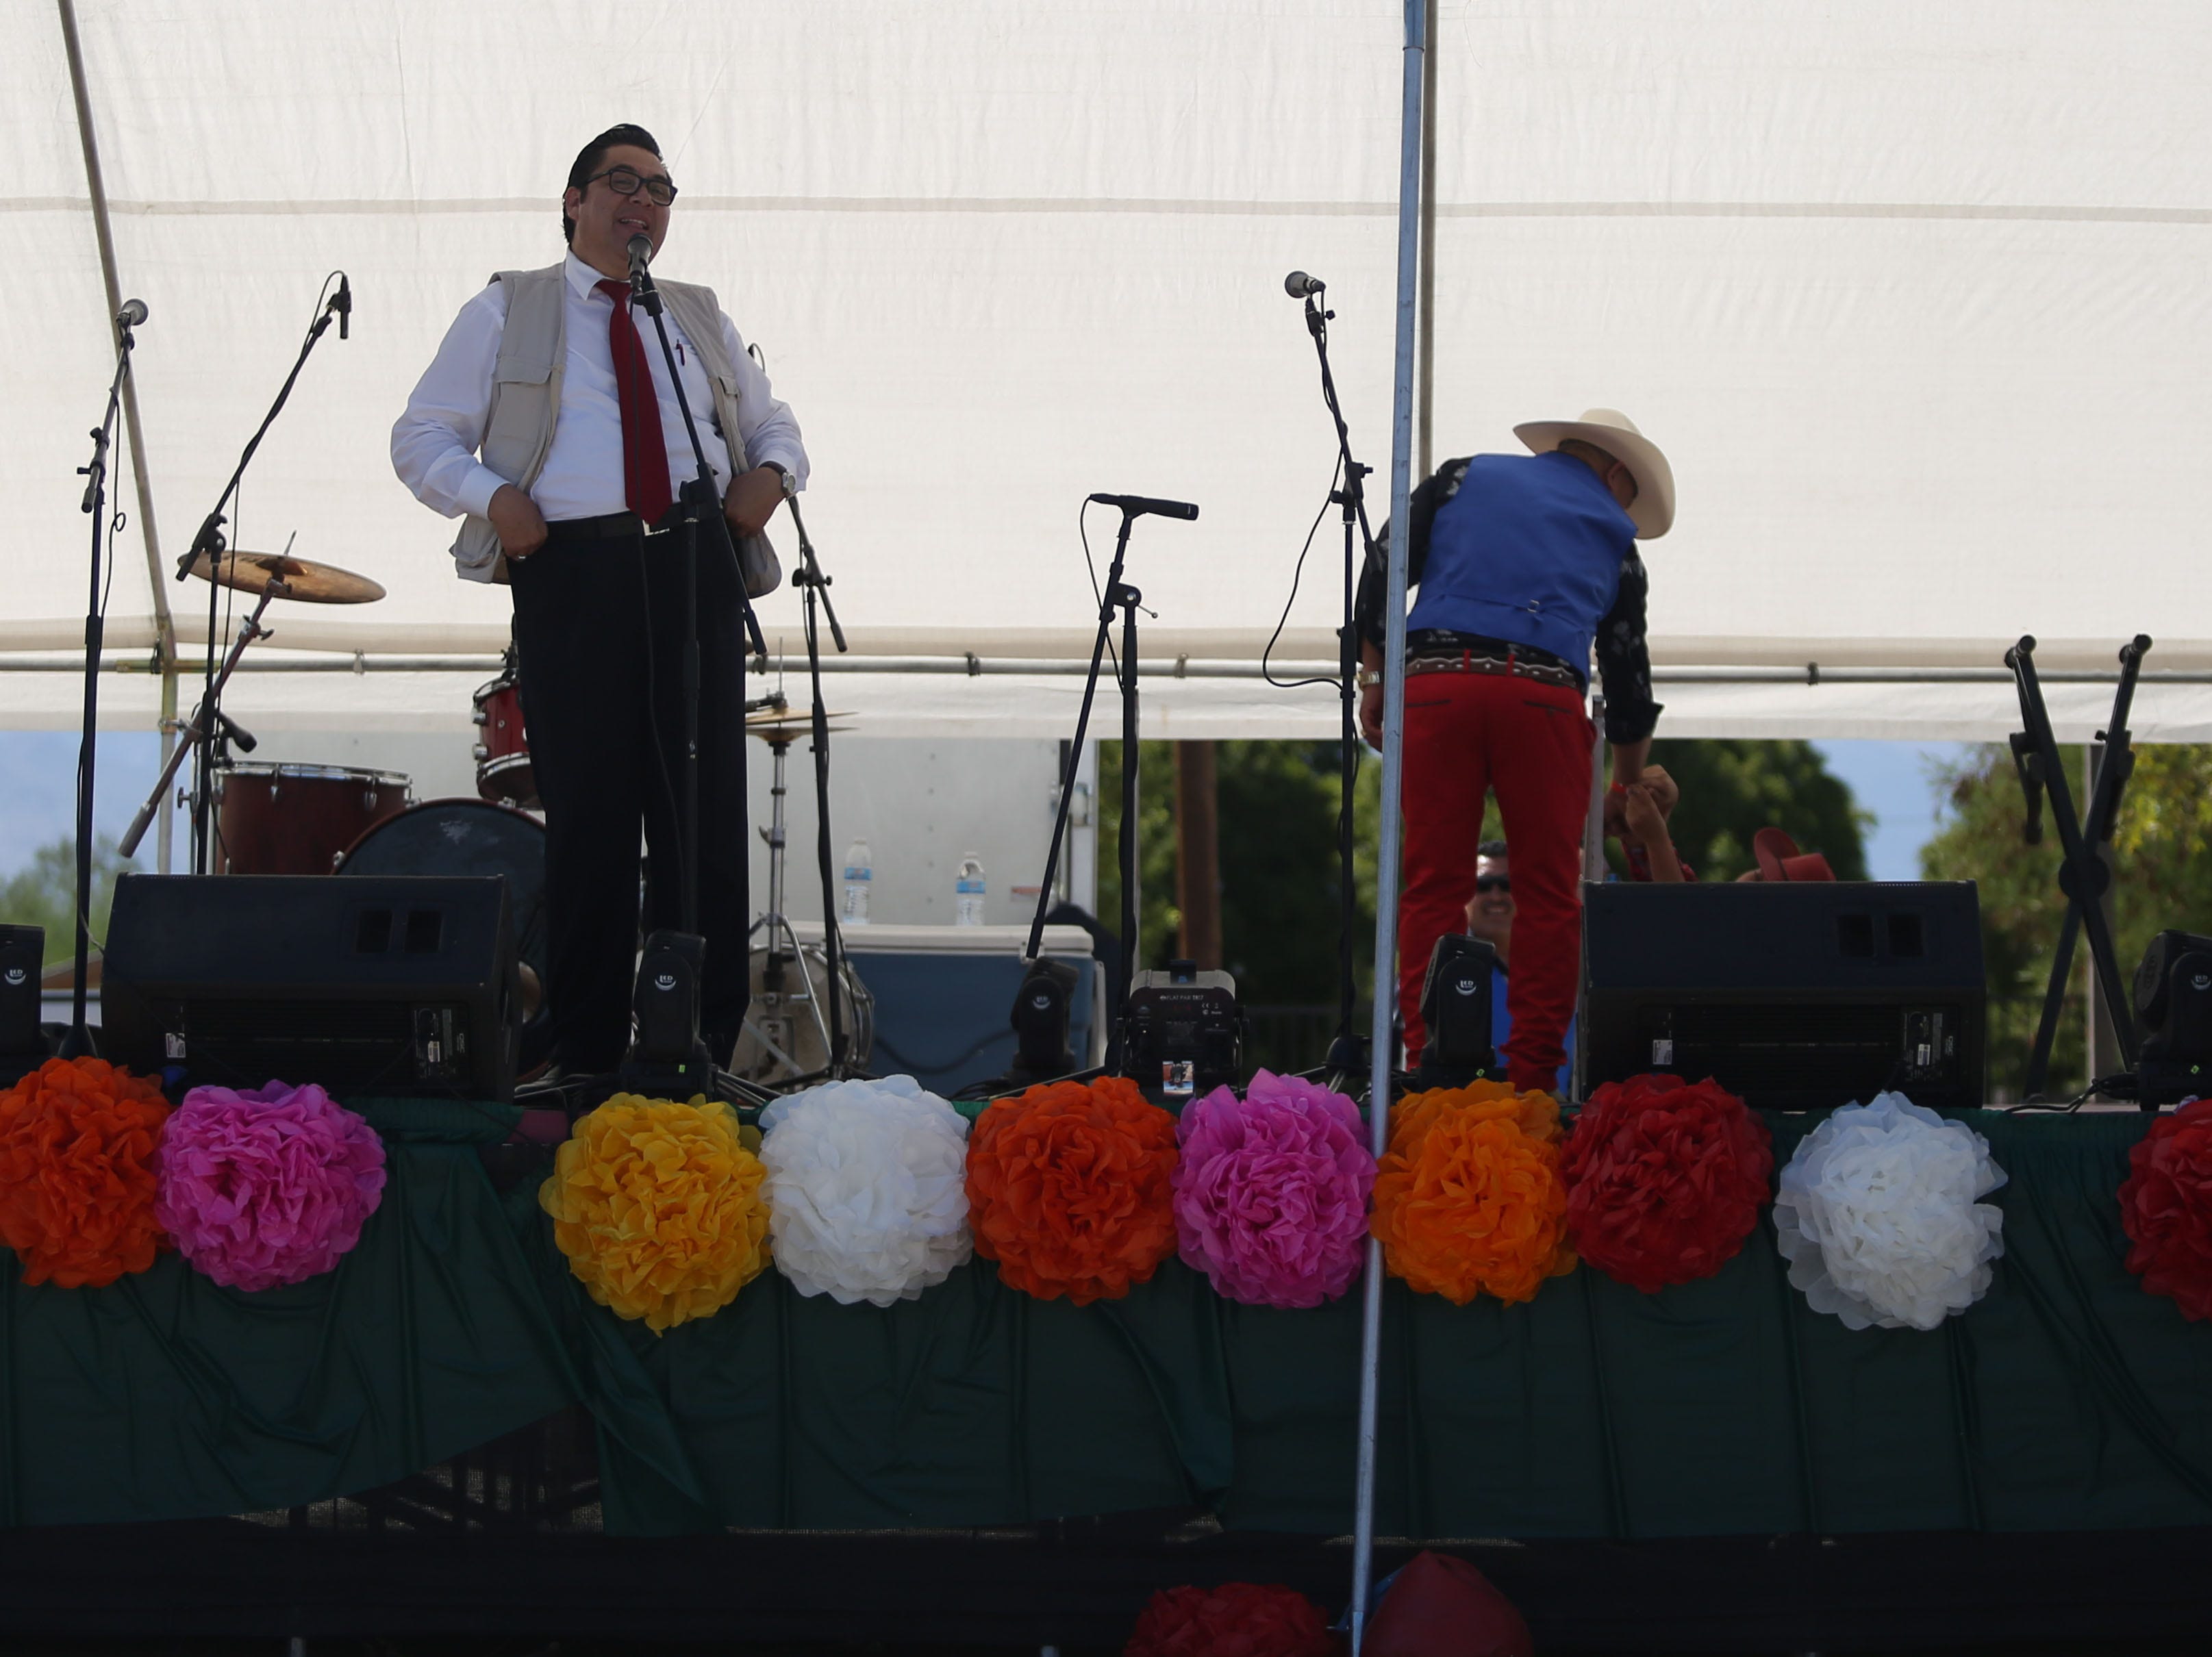 Marcos Palma MCs the Mexican independence day celebration at Our Virgin of Guadalupe Church in Mecca on Saturday, September 15, 2018.